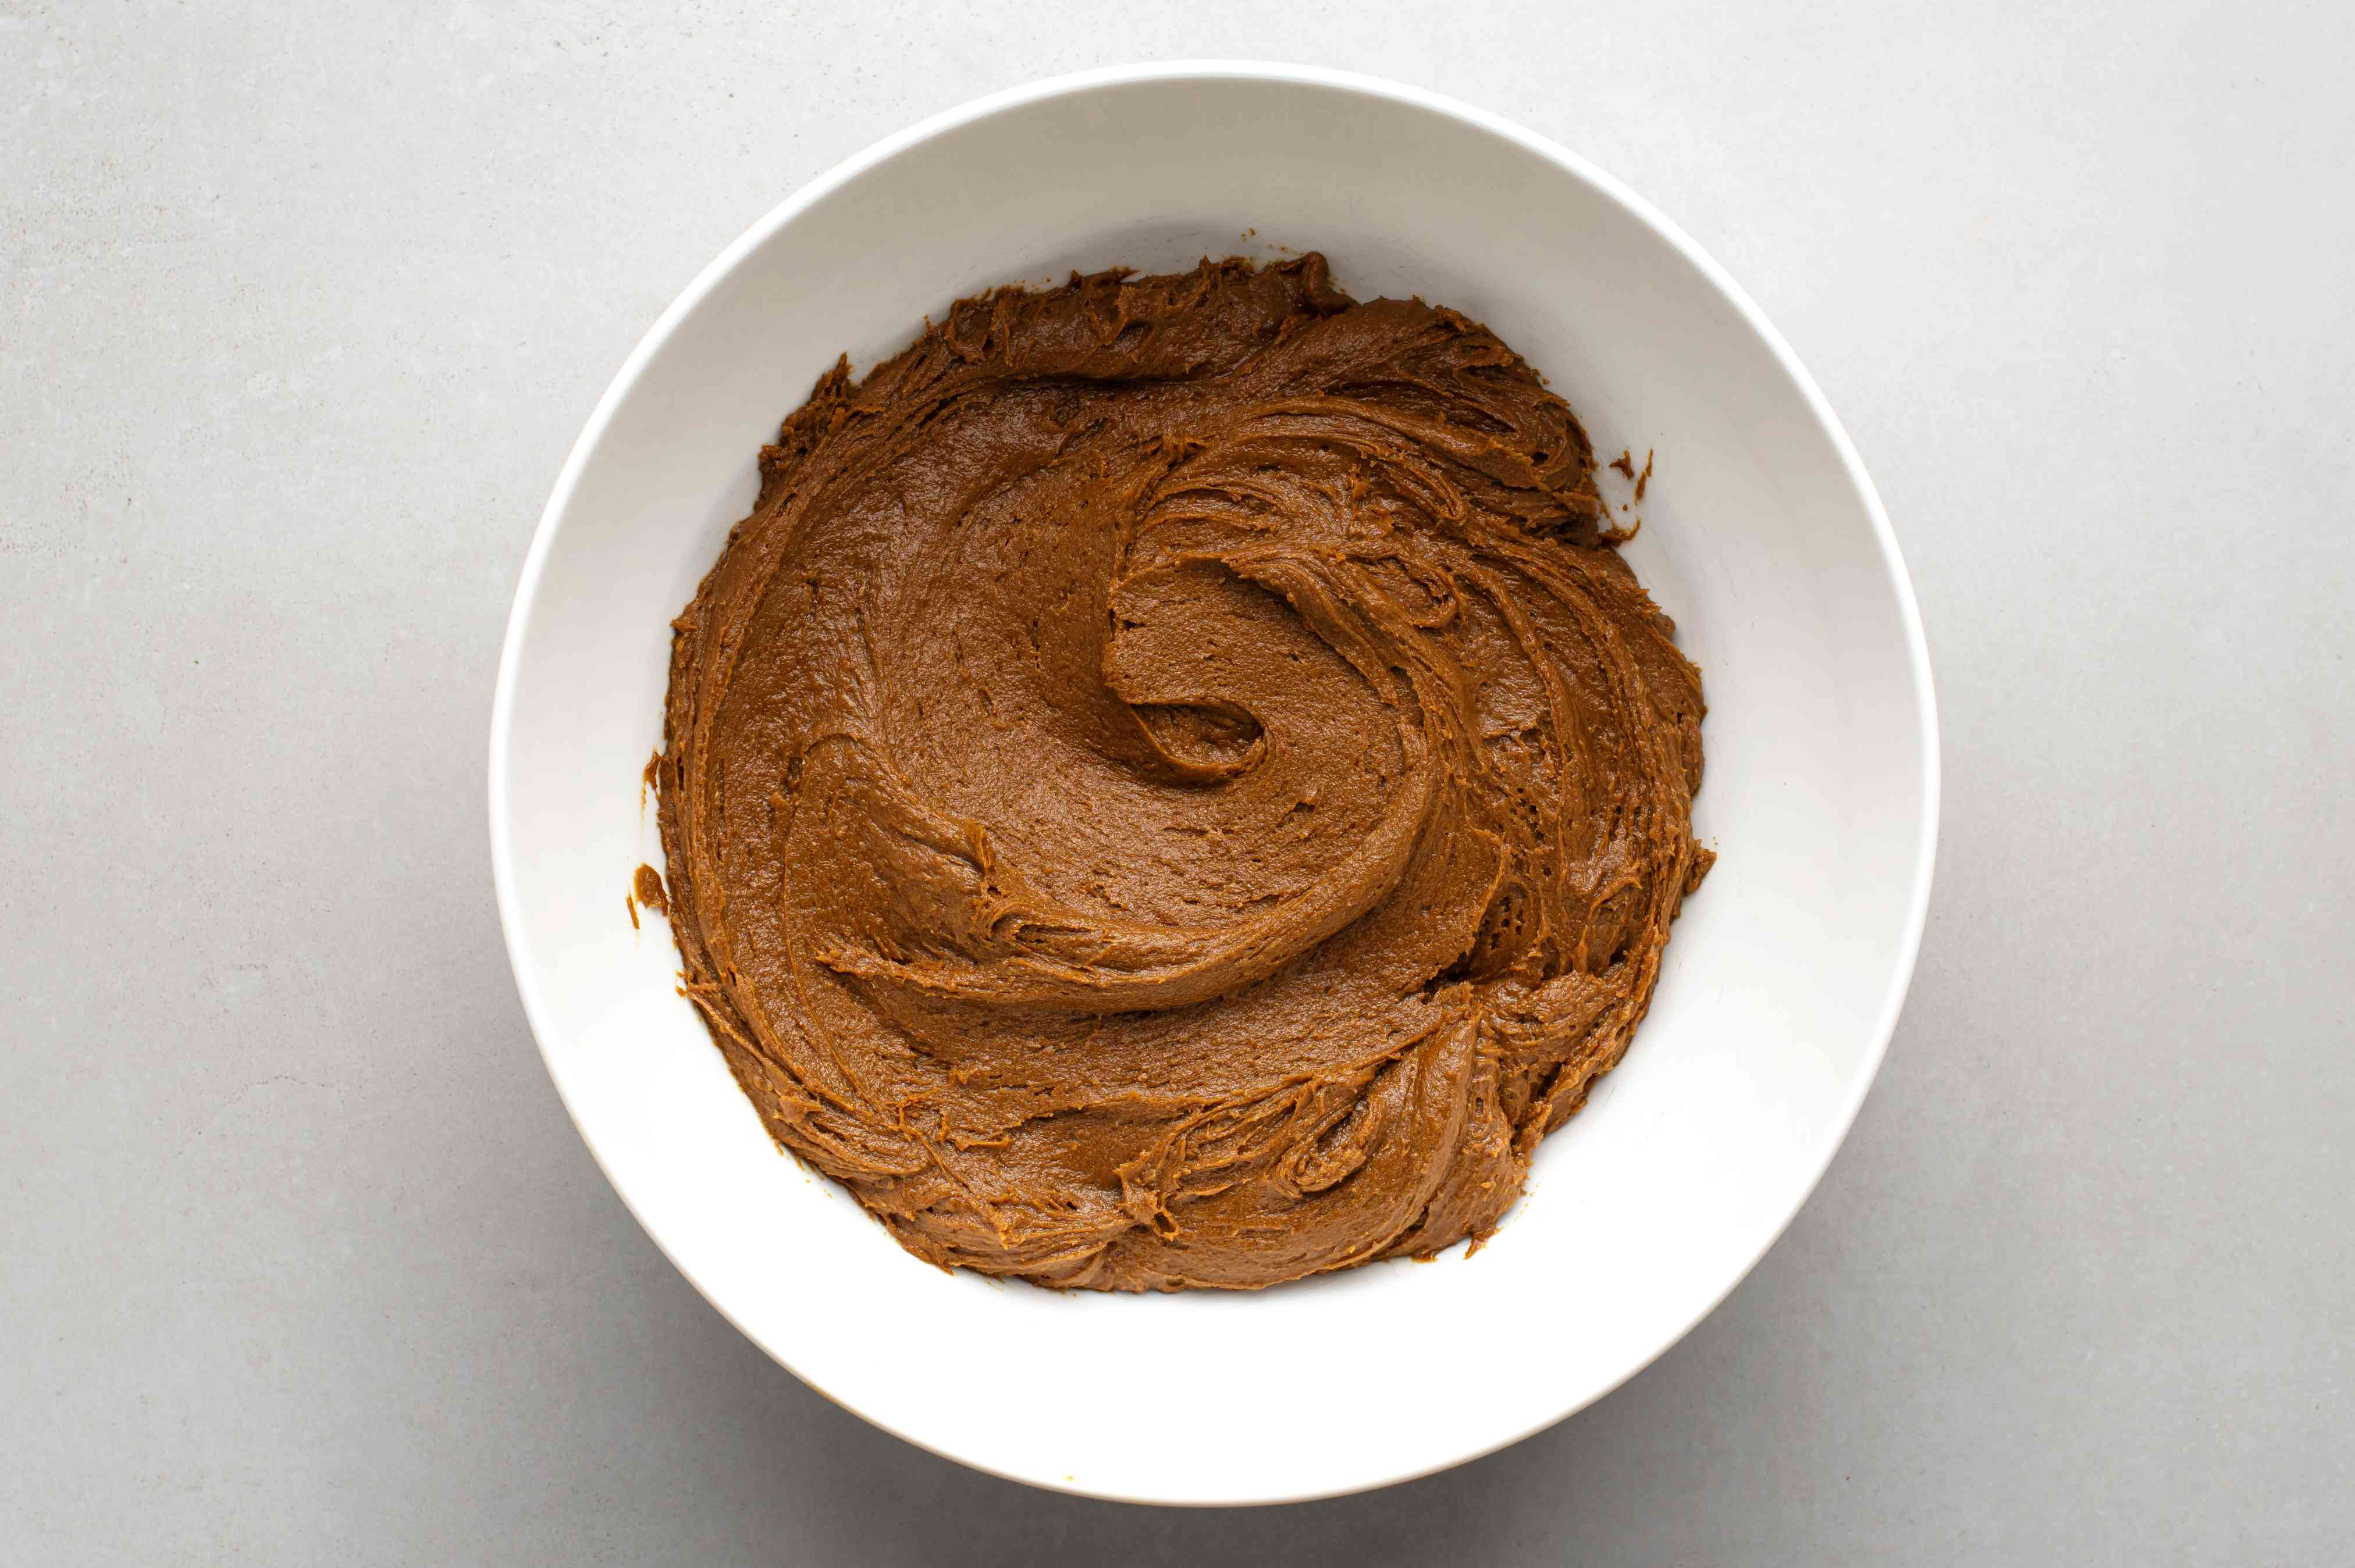 Add spices, flour, and the sour cream mixture to the molasses mixture